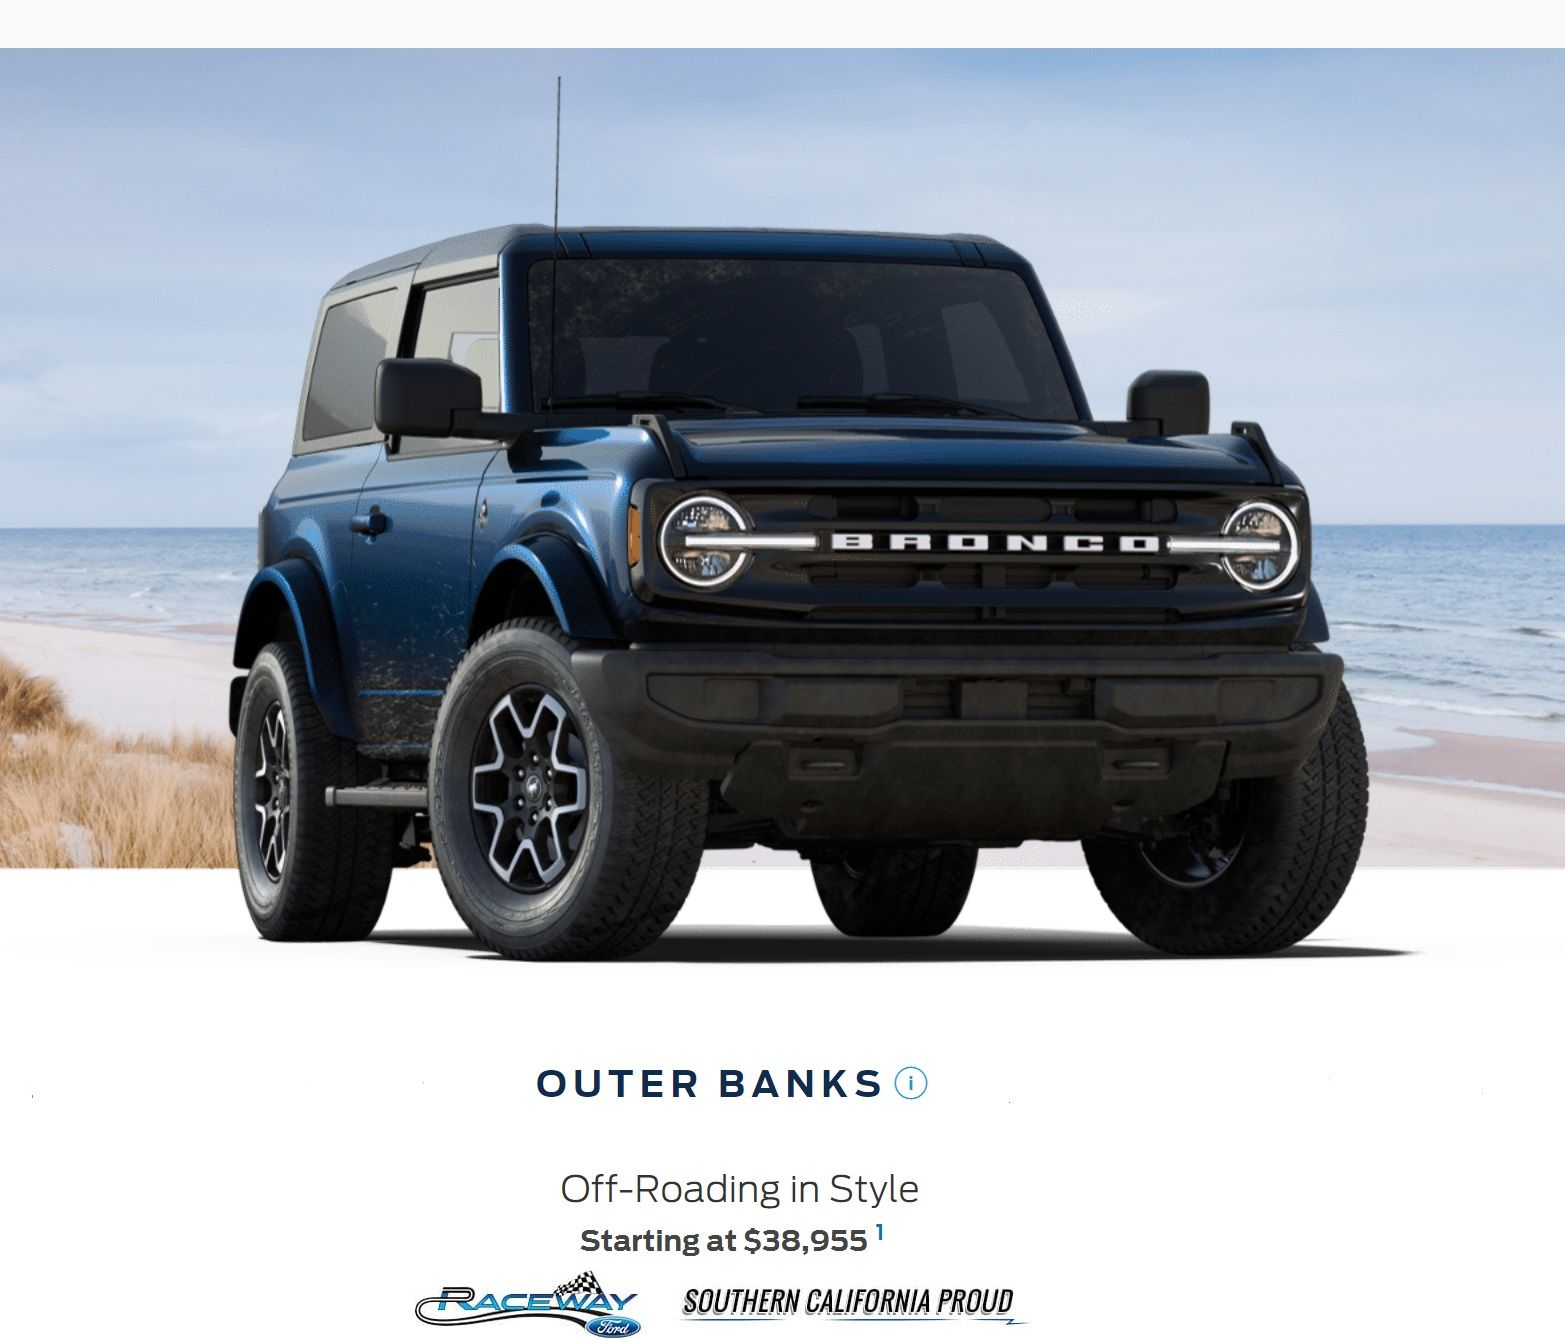 2021 Ford Bronco Outer Banks 2dr in 2020 Ford bronco